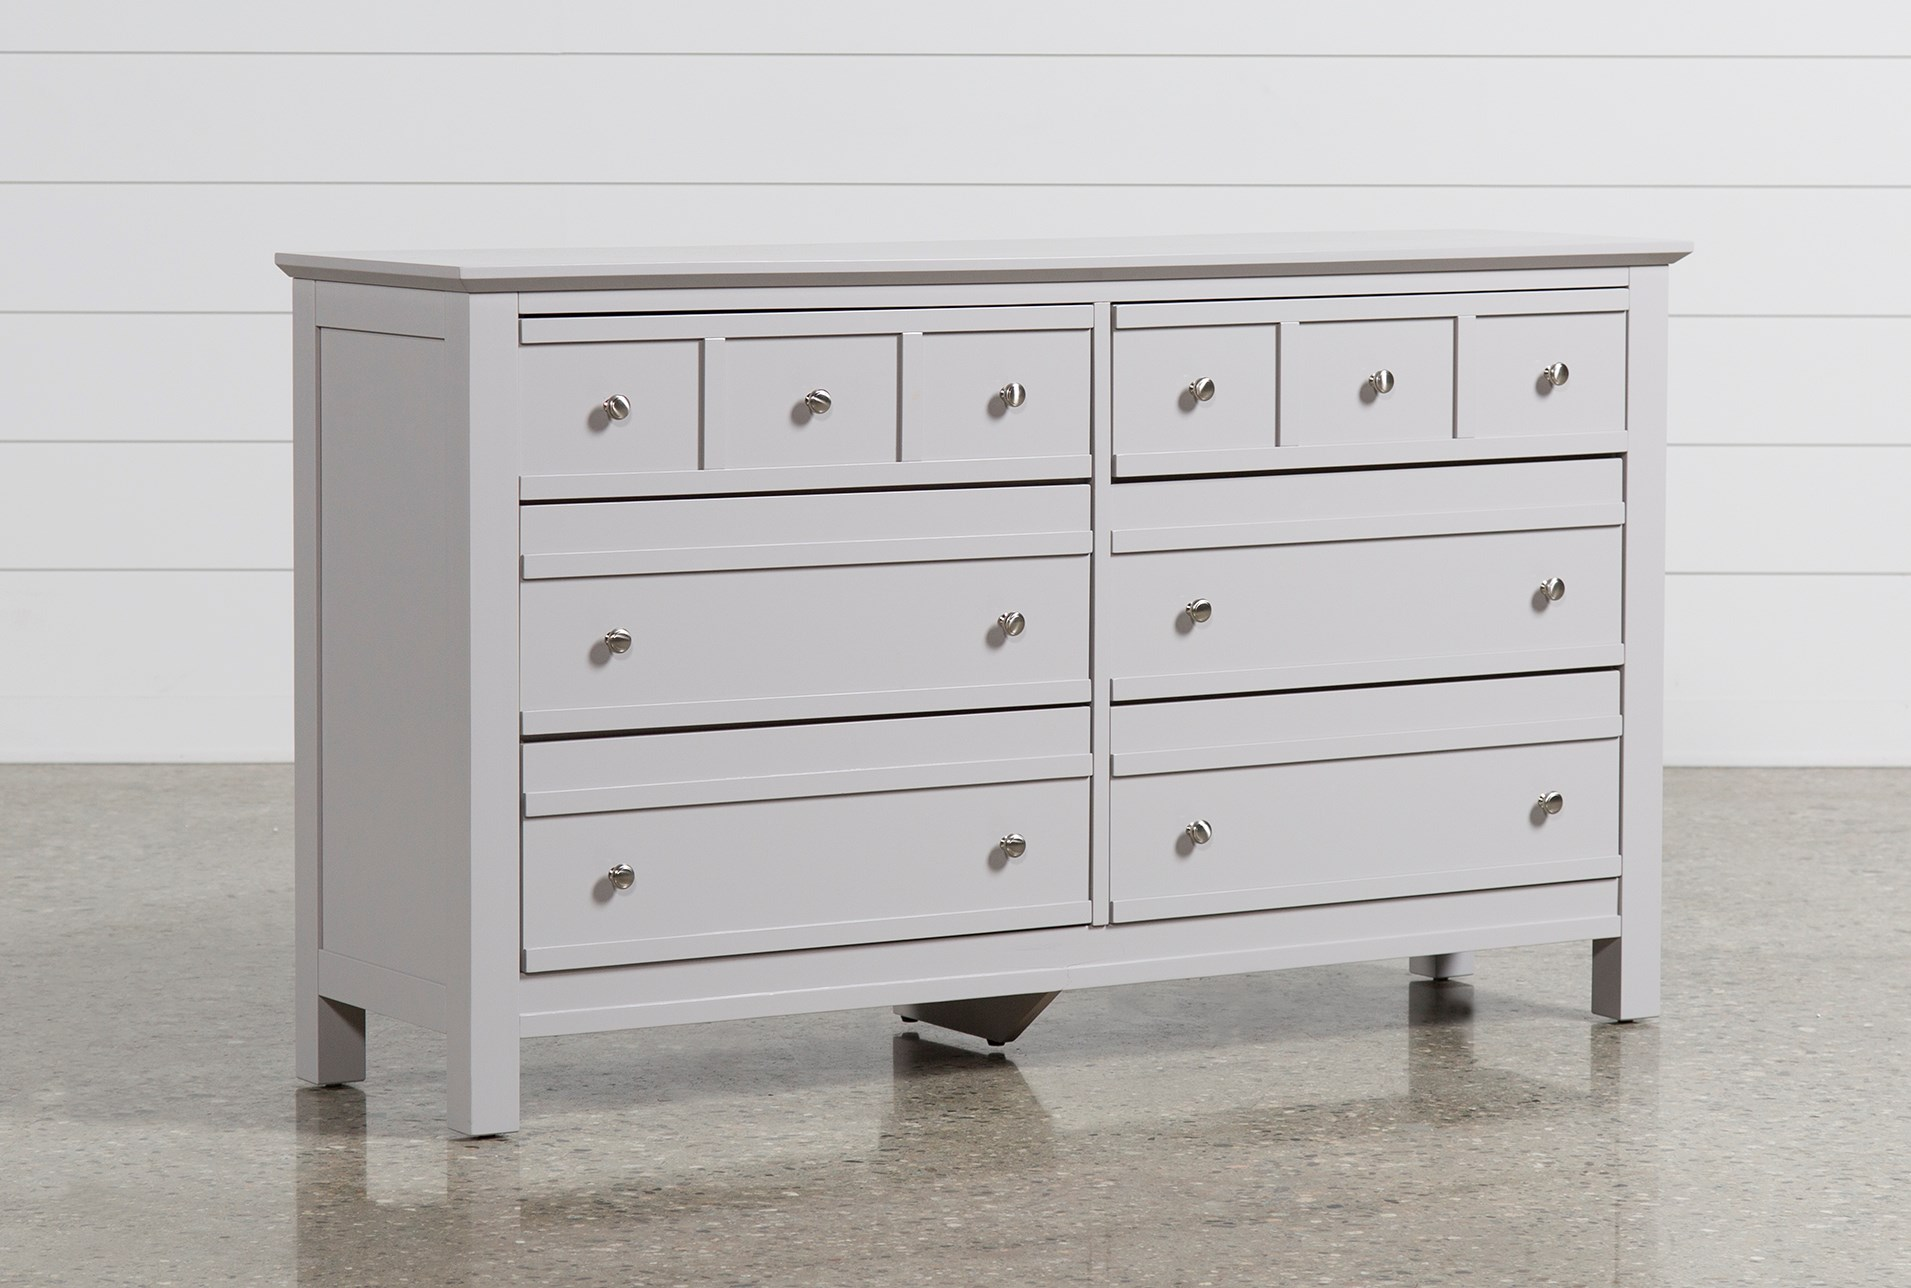 Bayside Grey Dresser Qty 1 Has Been Successfully Added To Your Cart